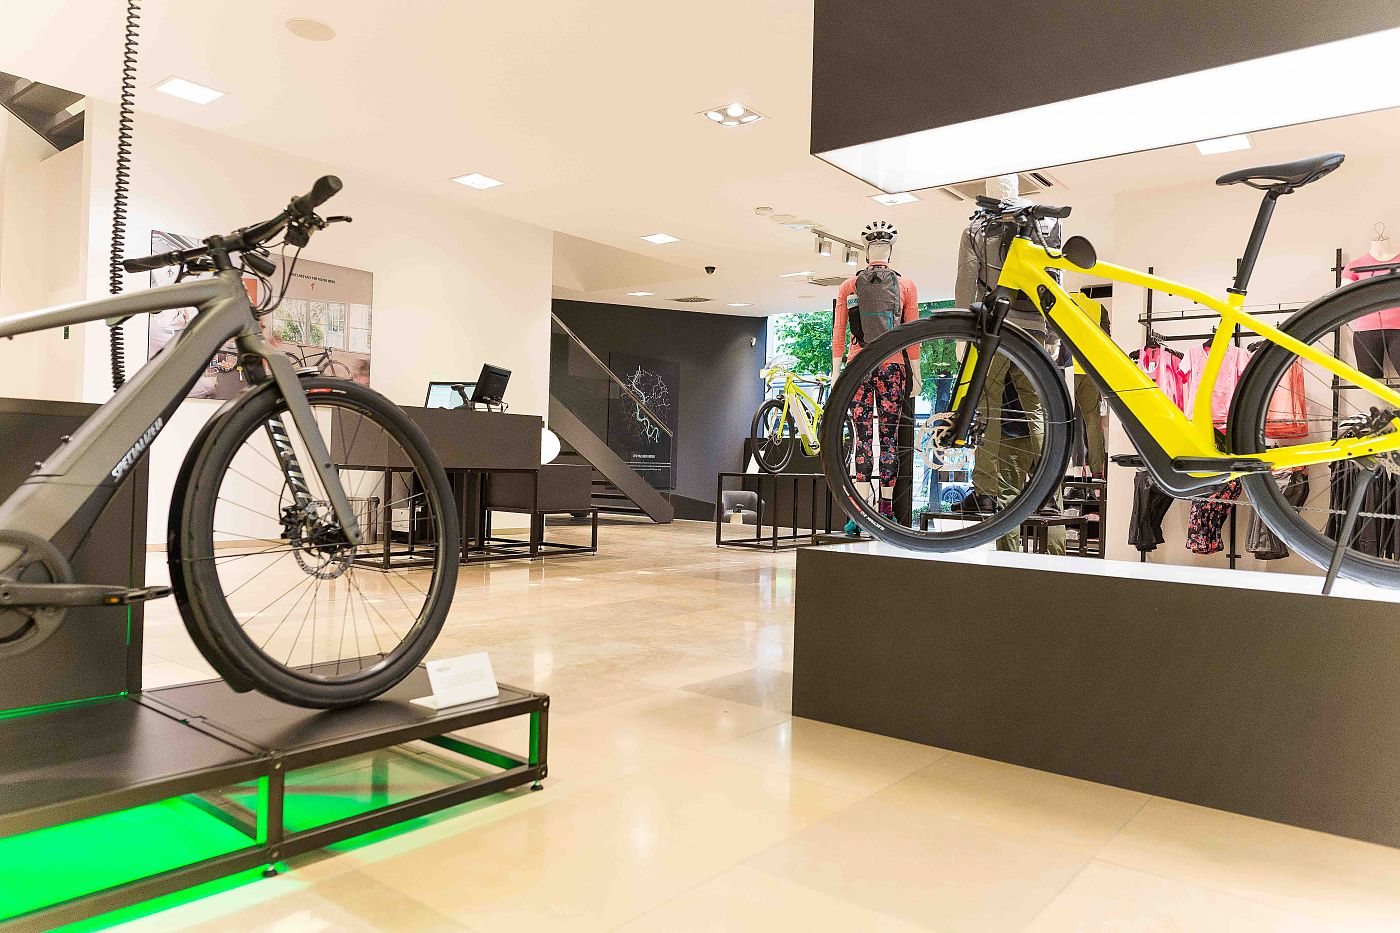 the popup showcases turbo pedalassist line as well as a